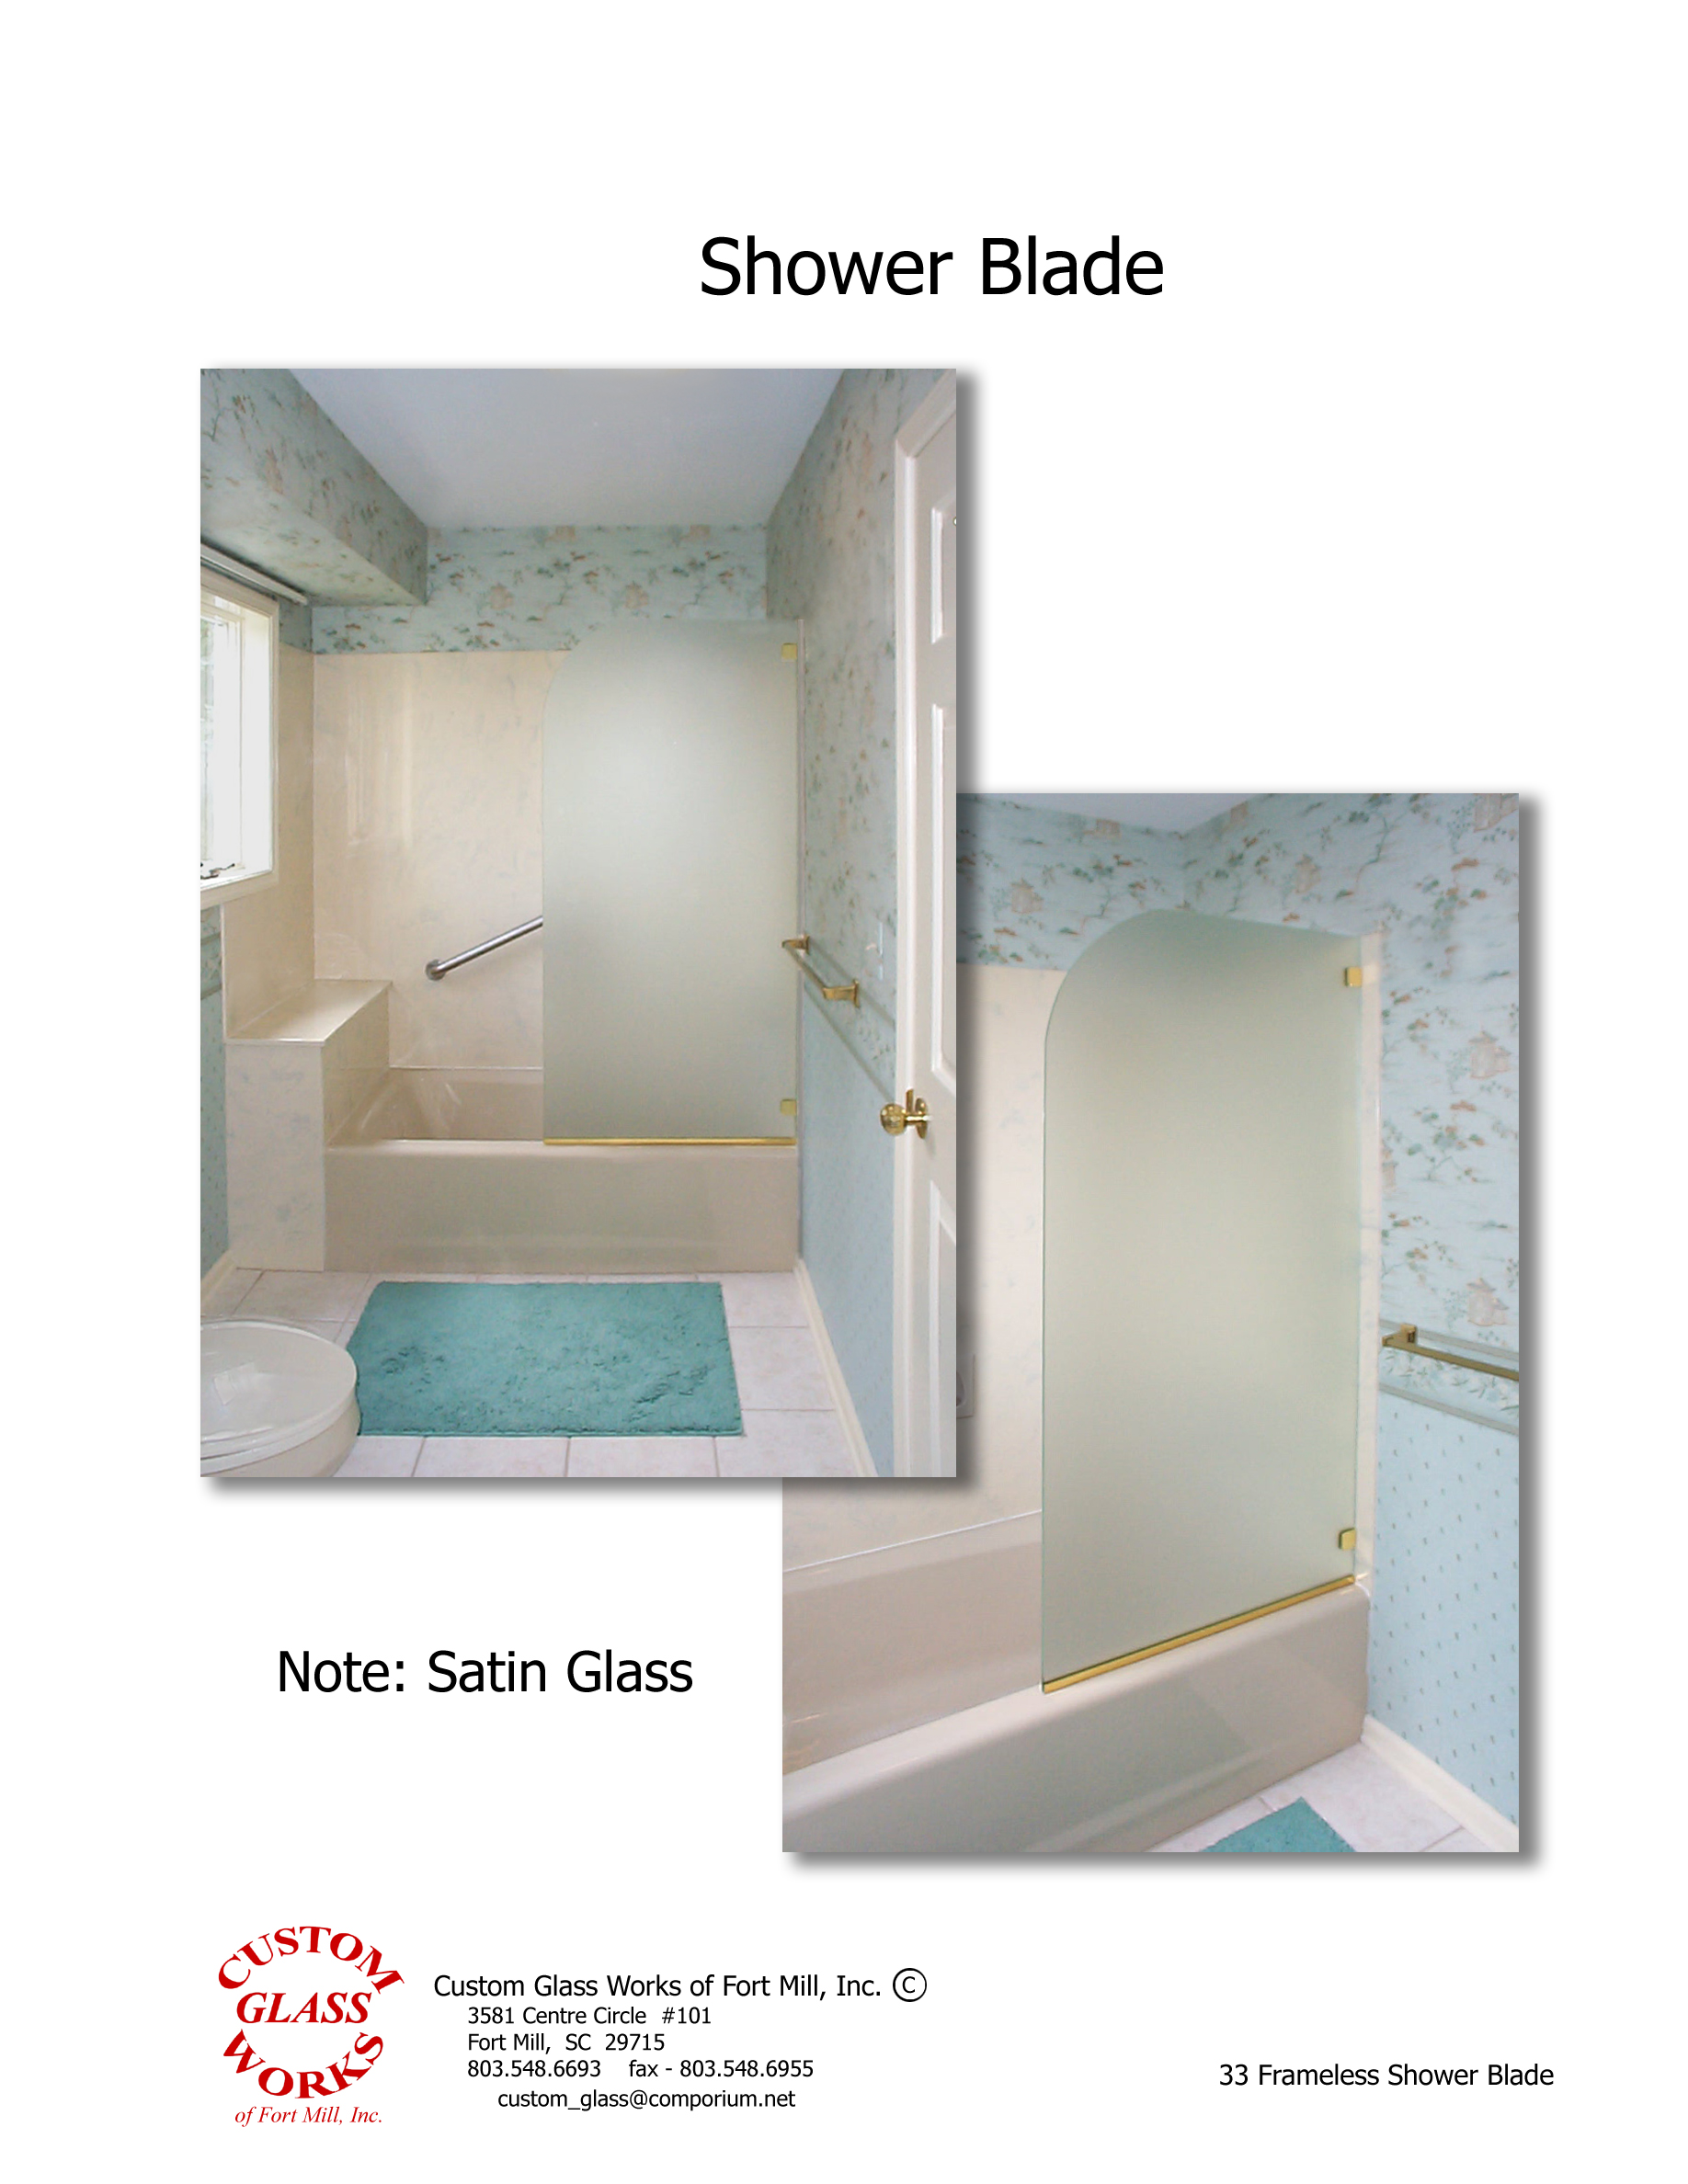 33 Frameless Shower Blade